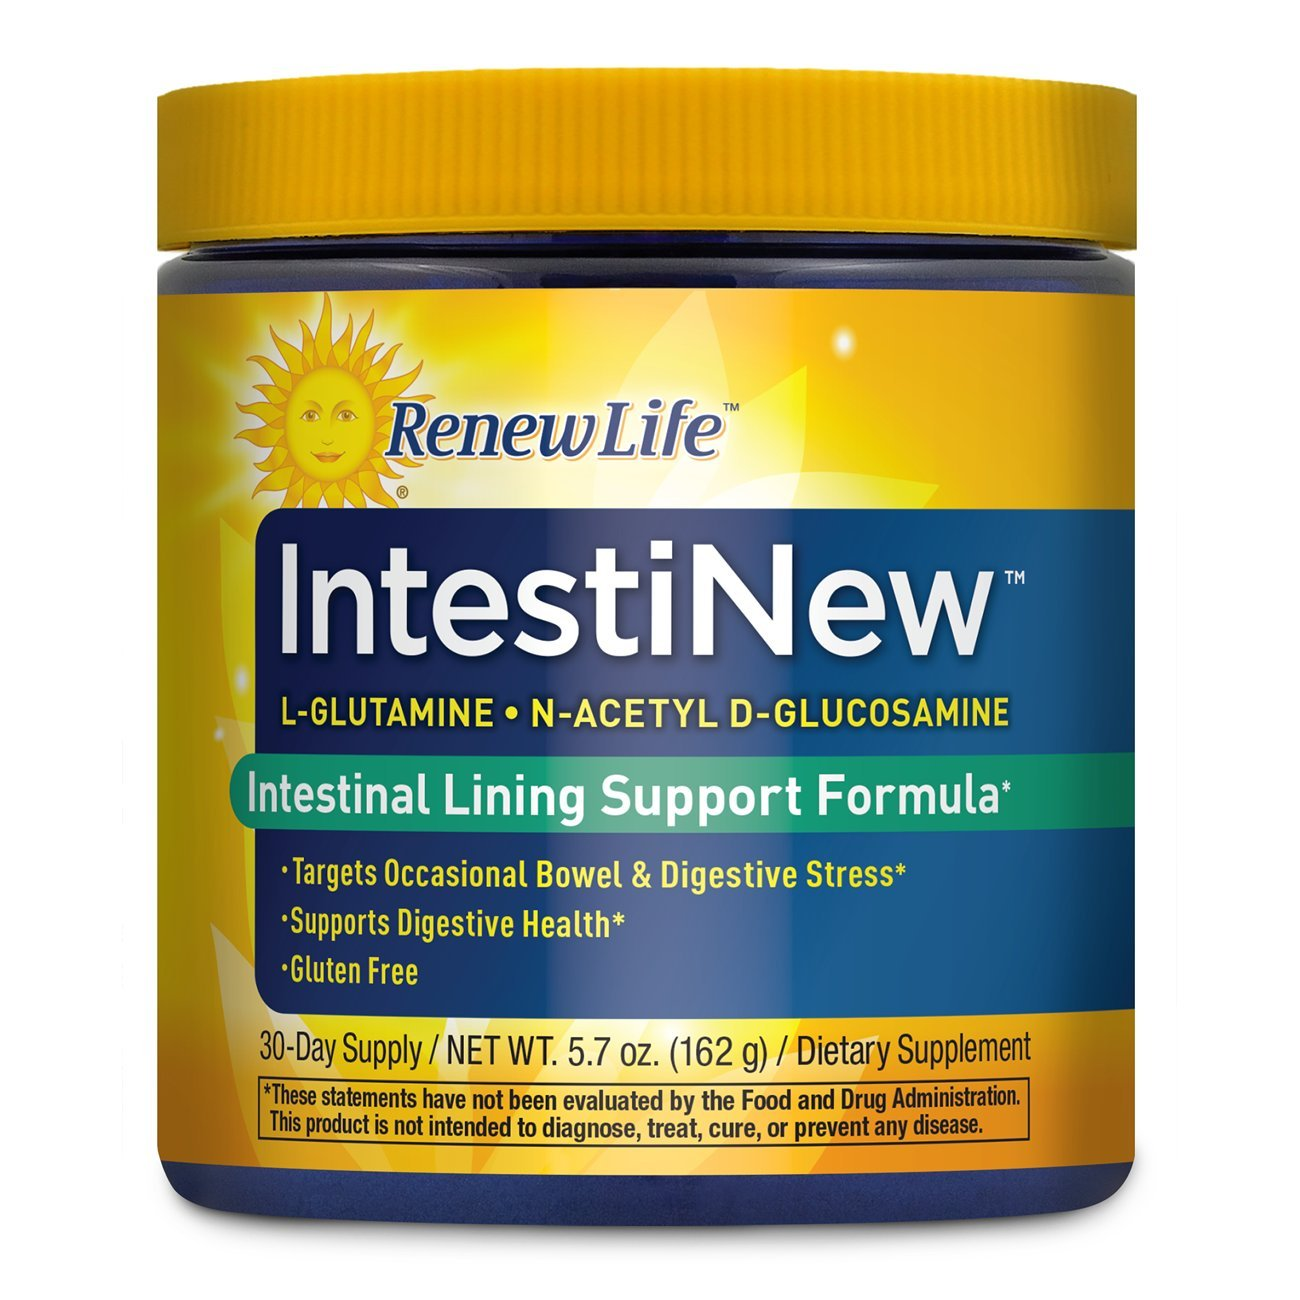 Renew Life - IntestiNew - digestive health supplement - gluten free - 5.7 ounces - 30 day supply